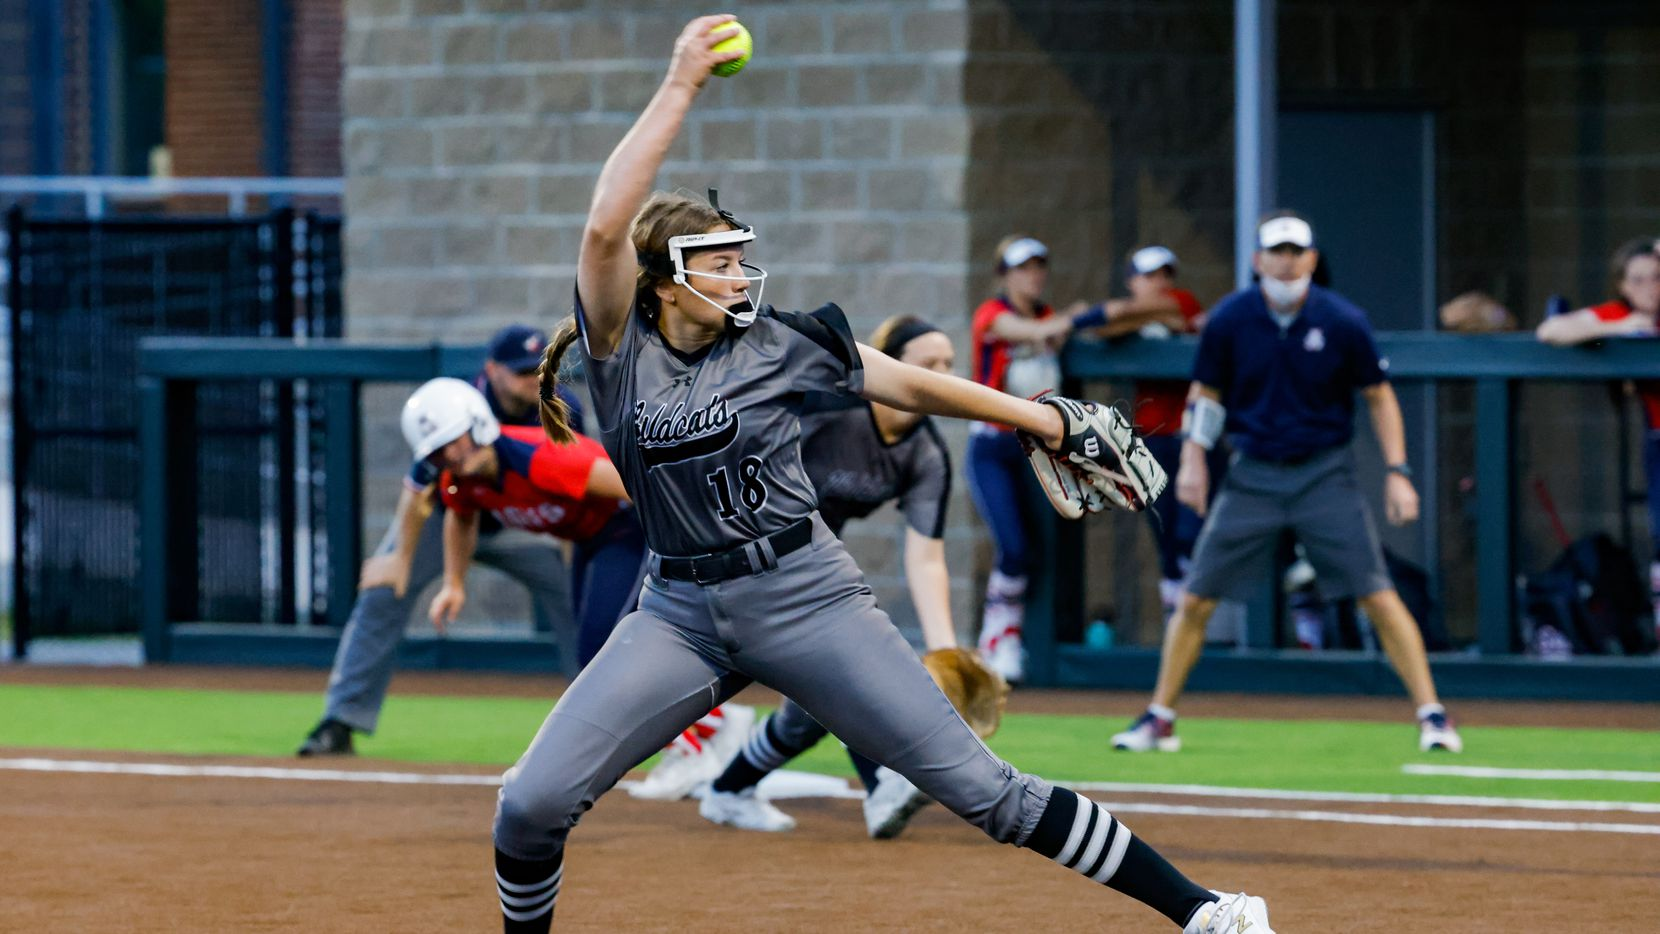 Guyer's Ranci Willis (18) pitches during the third inning of a District 5-6A game against Allen at Denton Guyer High School in Denton on Tuesday, Apr. 9, 2021. (Juan Figueroa/ The Dallas Morning News)